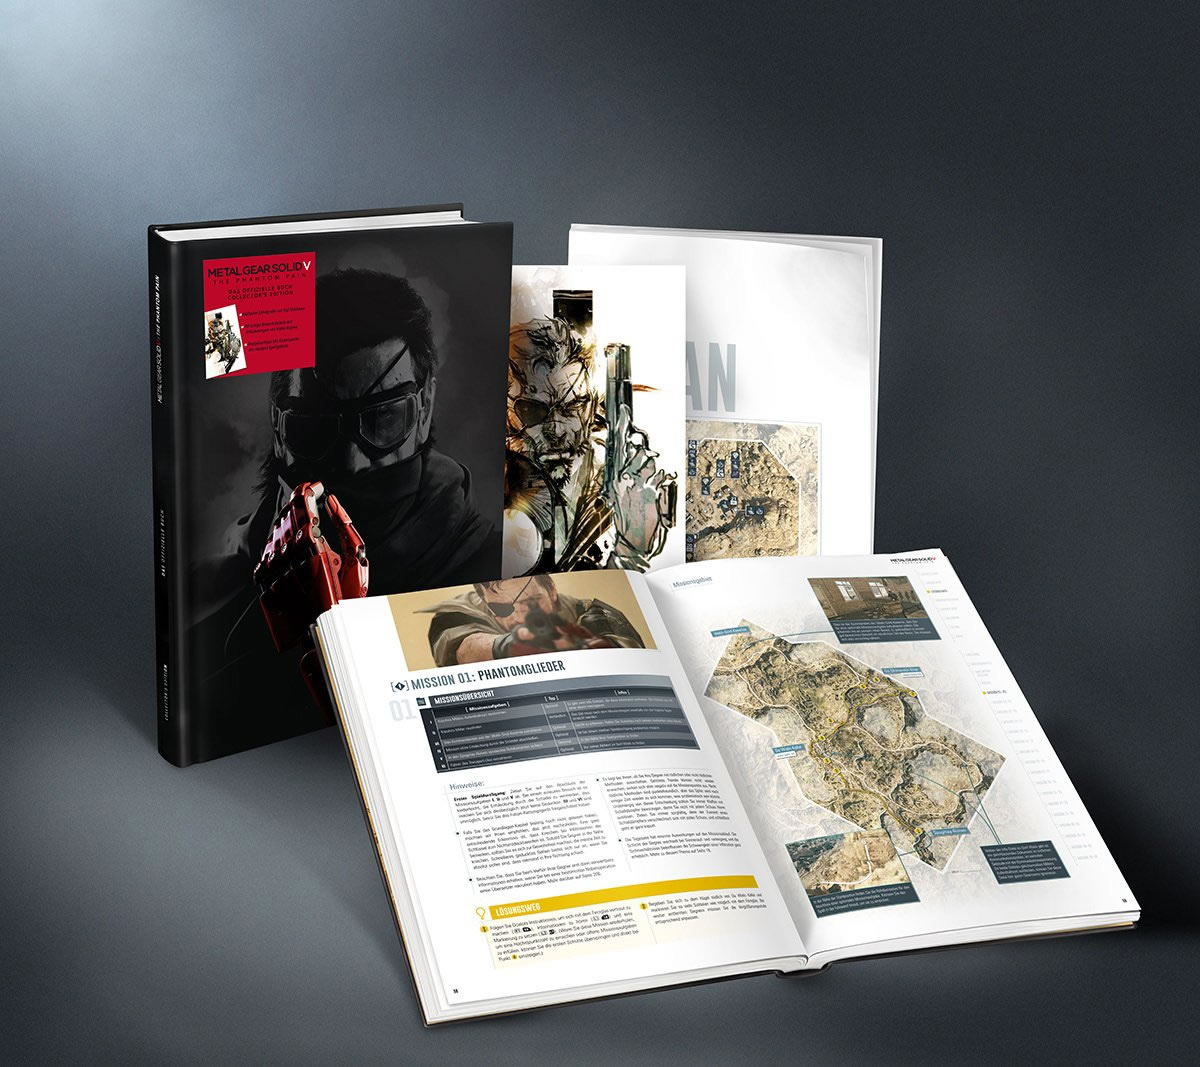 Metal-Gear-Solid-V-The-Phantom-Pain-Piggyback-Collector's-Guide-Contents